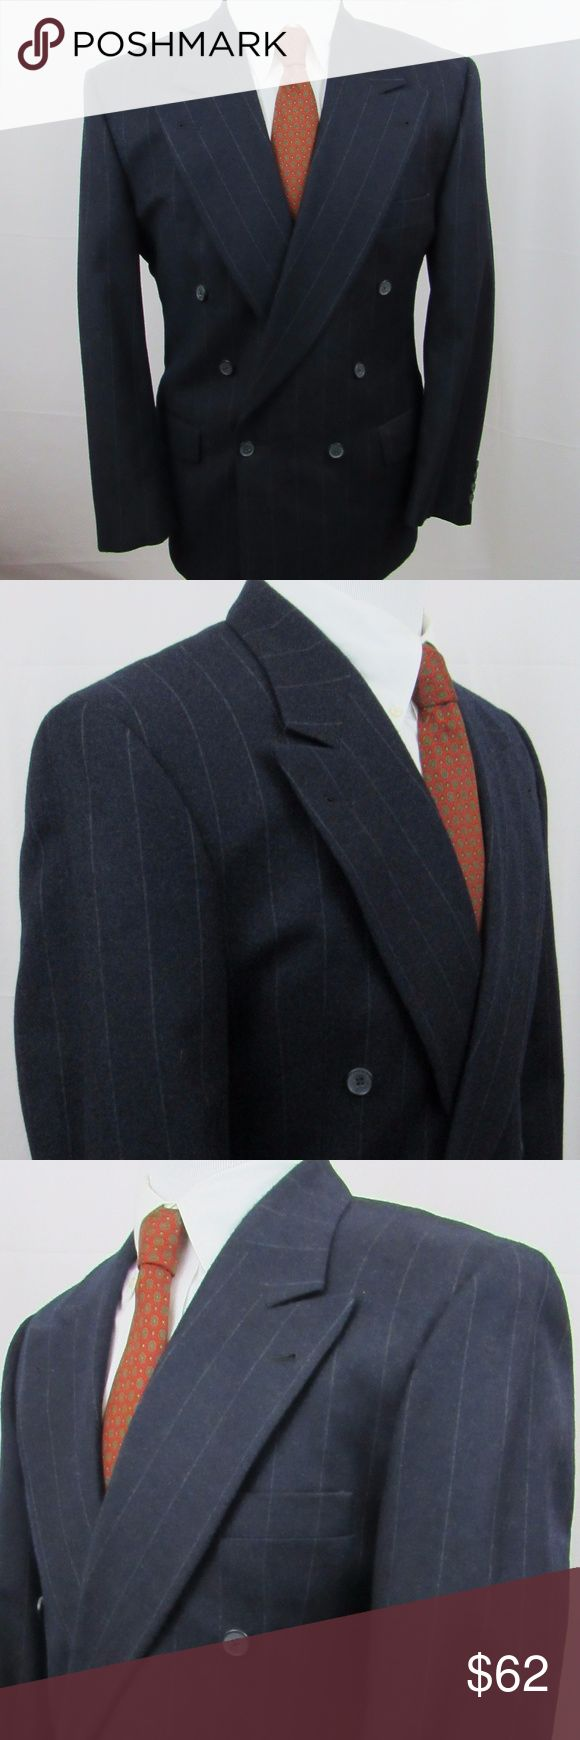 """🇺🇸   Joseph Abboud blue pin striped suit Made in the USA This is a 100% wool, peak lapel, double breasted size 40R suit. It's color is blue, with pin striping. Sharp suit. I don't find flaws but please zoom in throughout to make a determination.  My best measurements:  Jacket Shoulder: 20"""" Pit to Pit: 21 1/2"""" Length: 30 1/2"""" Sleeve: 34 1/2"""" (with 2"""" extra)  Trousers Waist: 32"""" Rise: 11 1/2"""" Inseam: 30""""  Cuff: 1 1/2"""" (with 1 1/2"""" extra)  INV-H99-170300 Joseph Abboud Suits & Blazers Suits"""